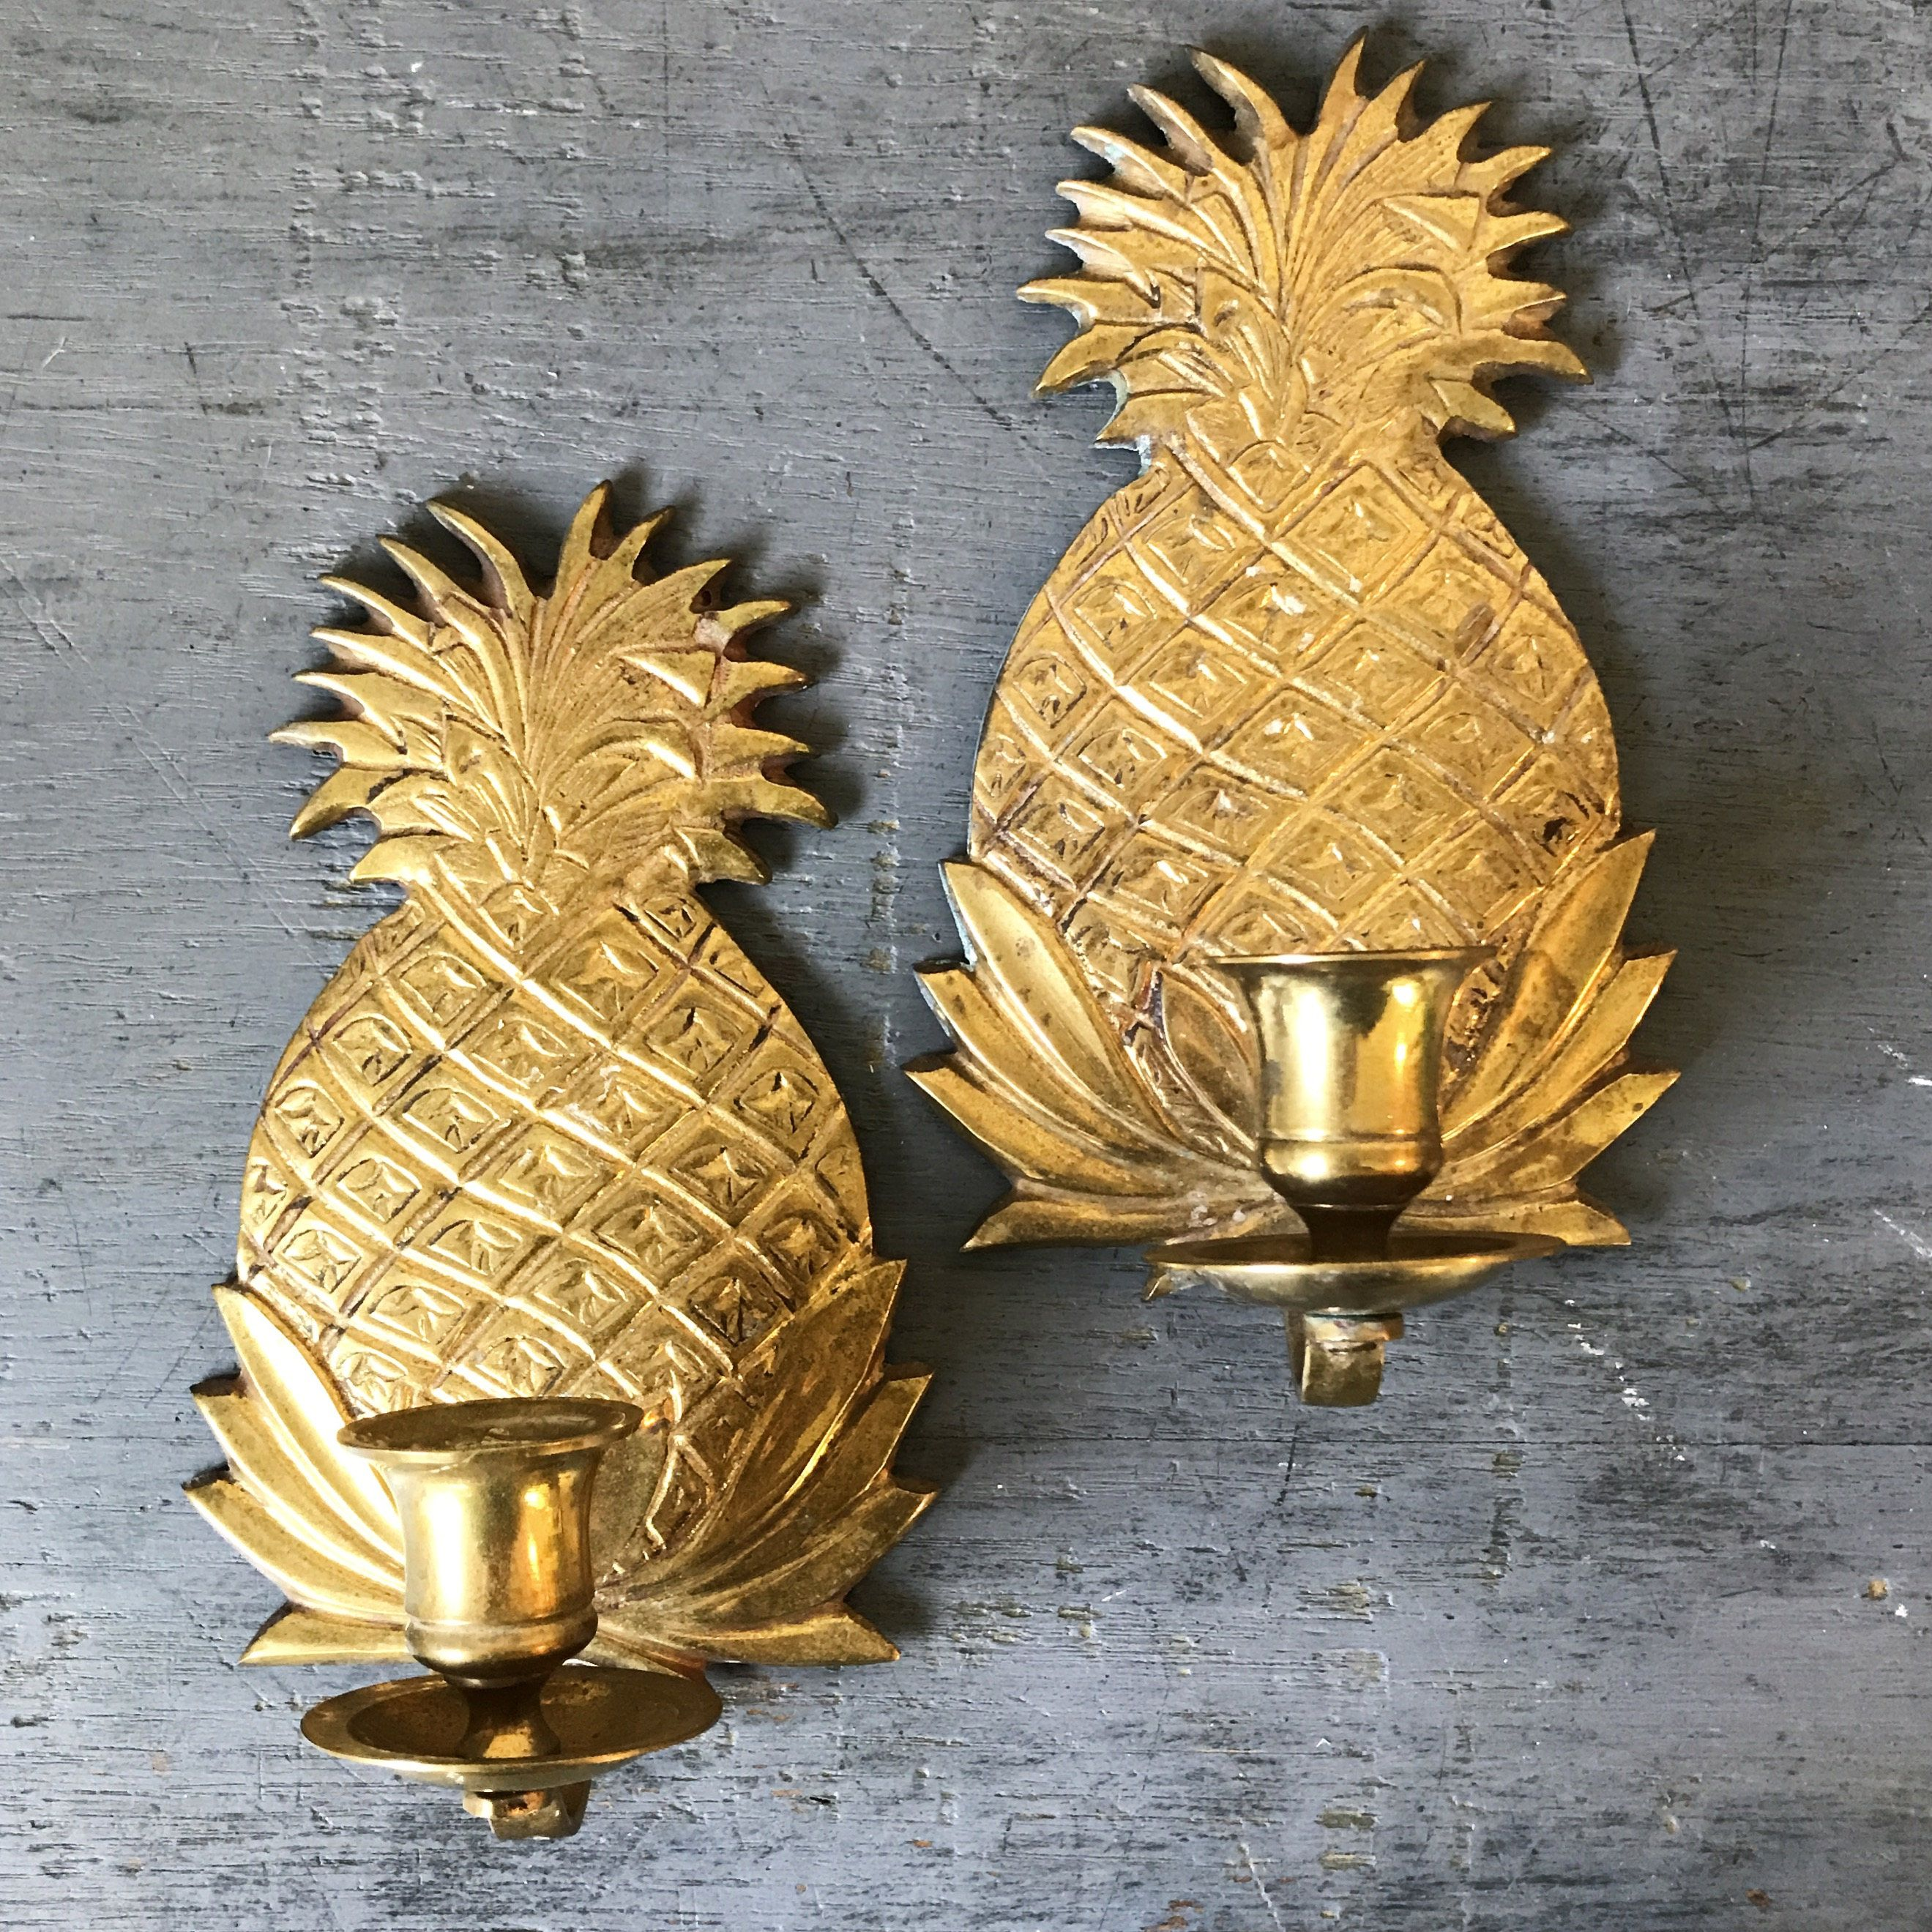 vintage brass candle sconces - pineapple candle holders - gold tiki ...